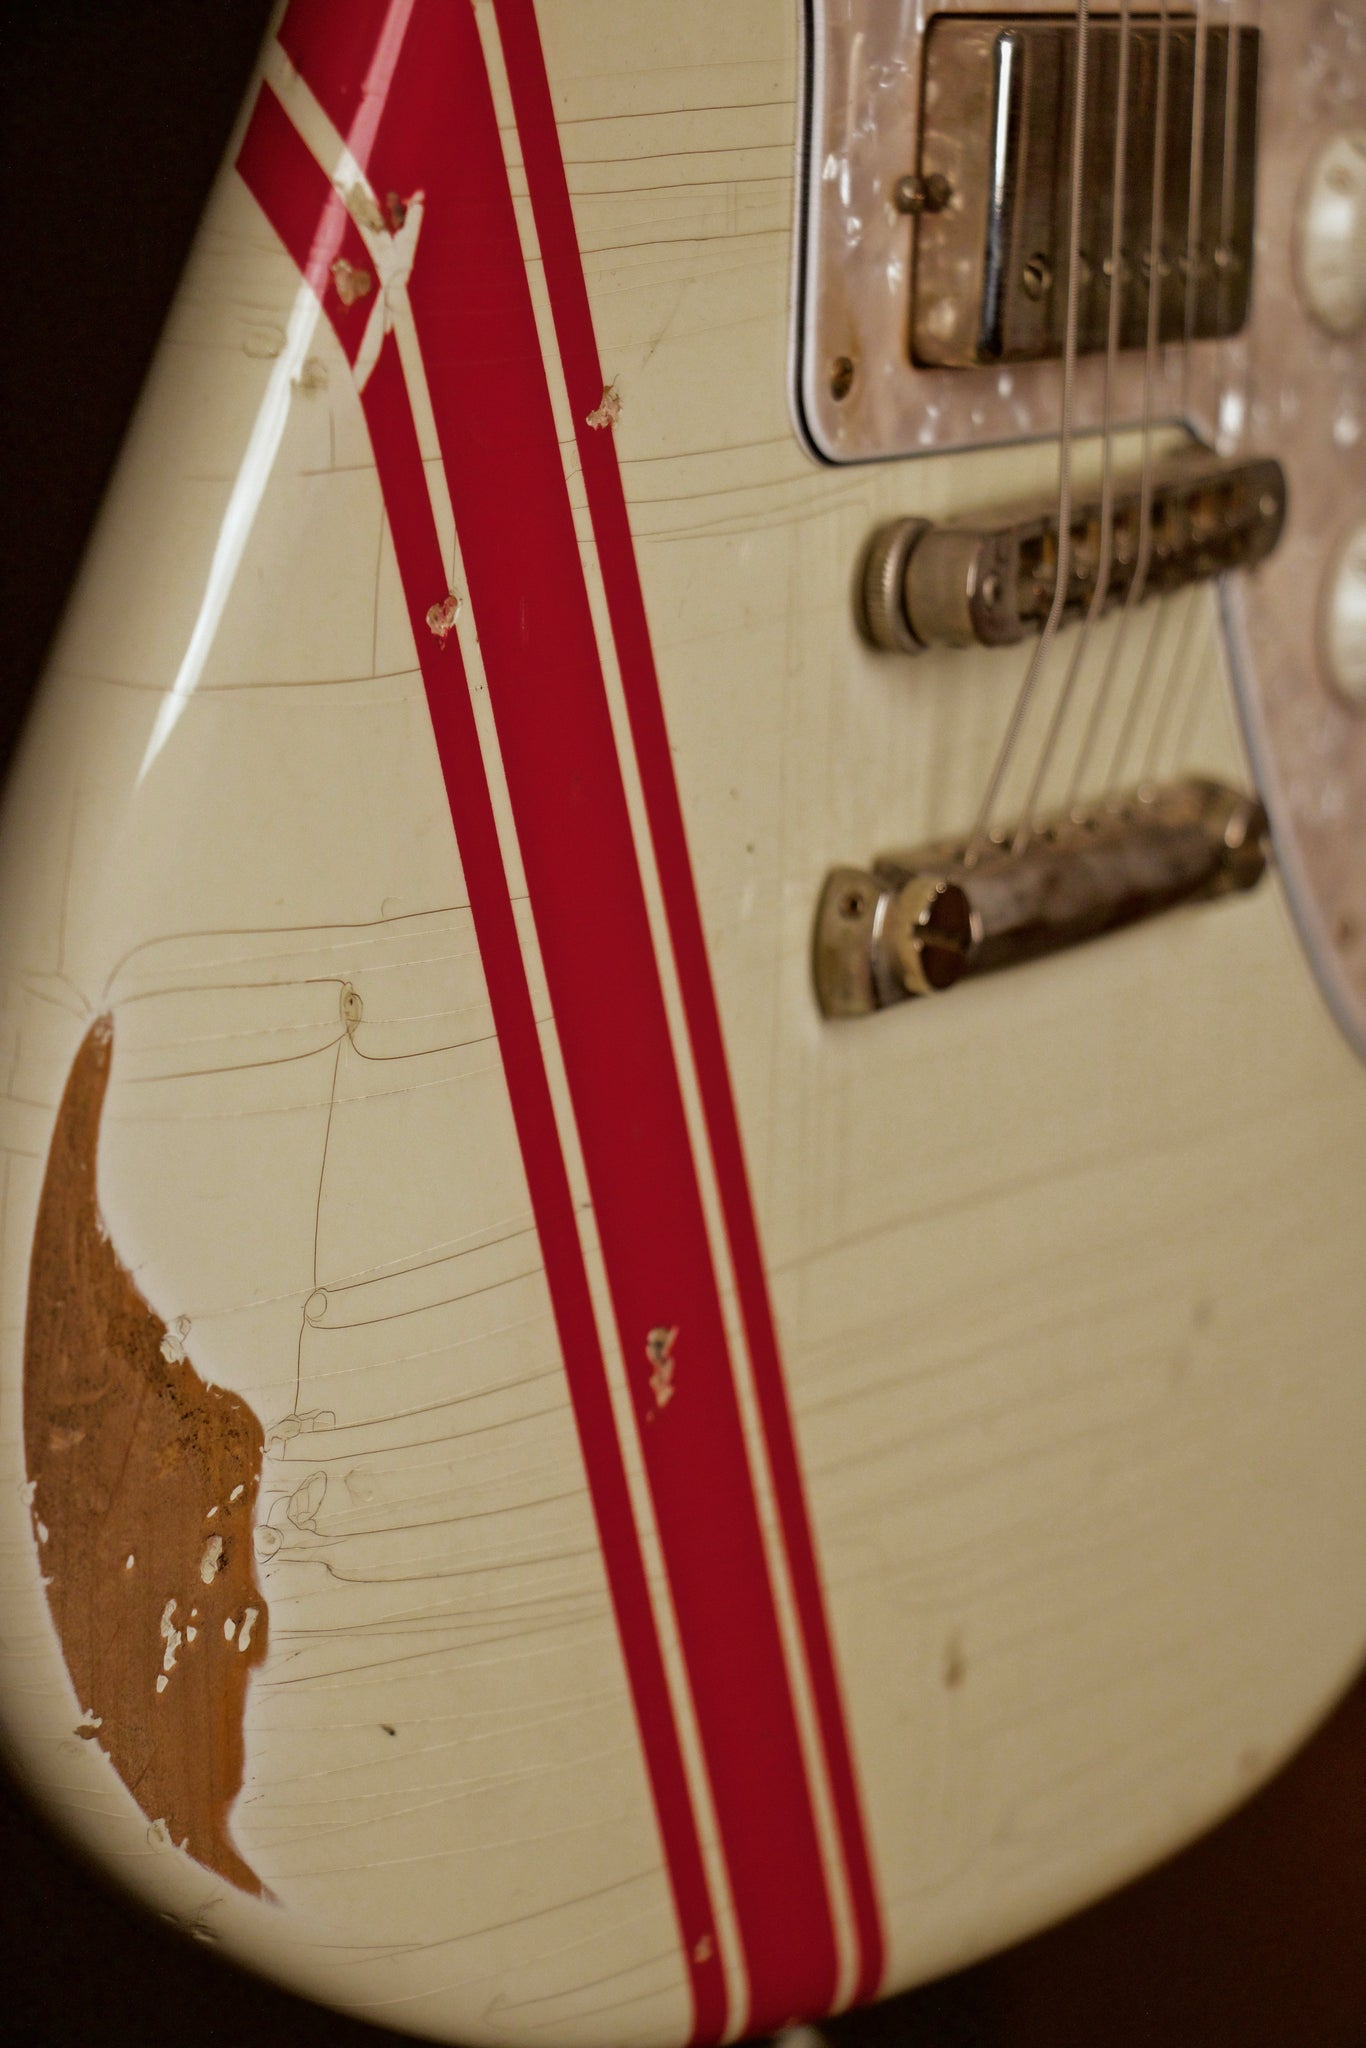 Fano Alt De Facto JM6 Electric Guitar Detail 1